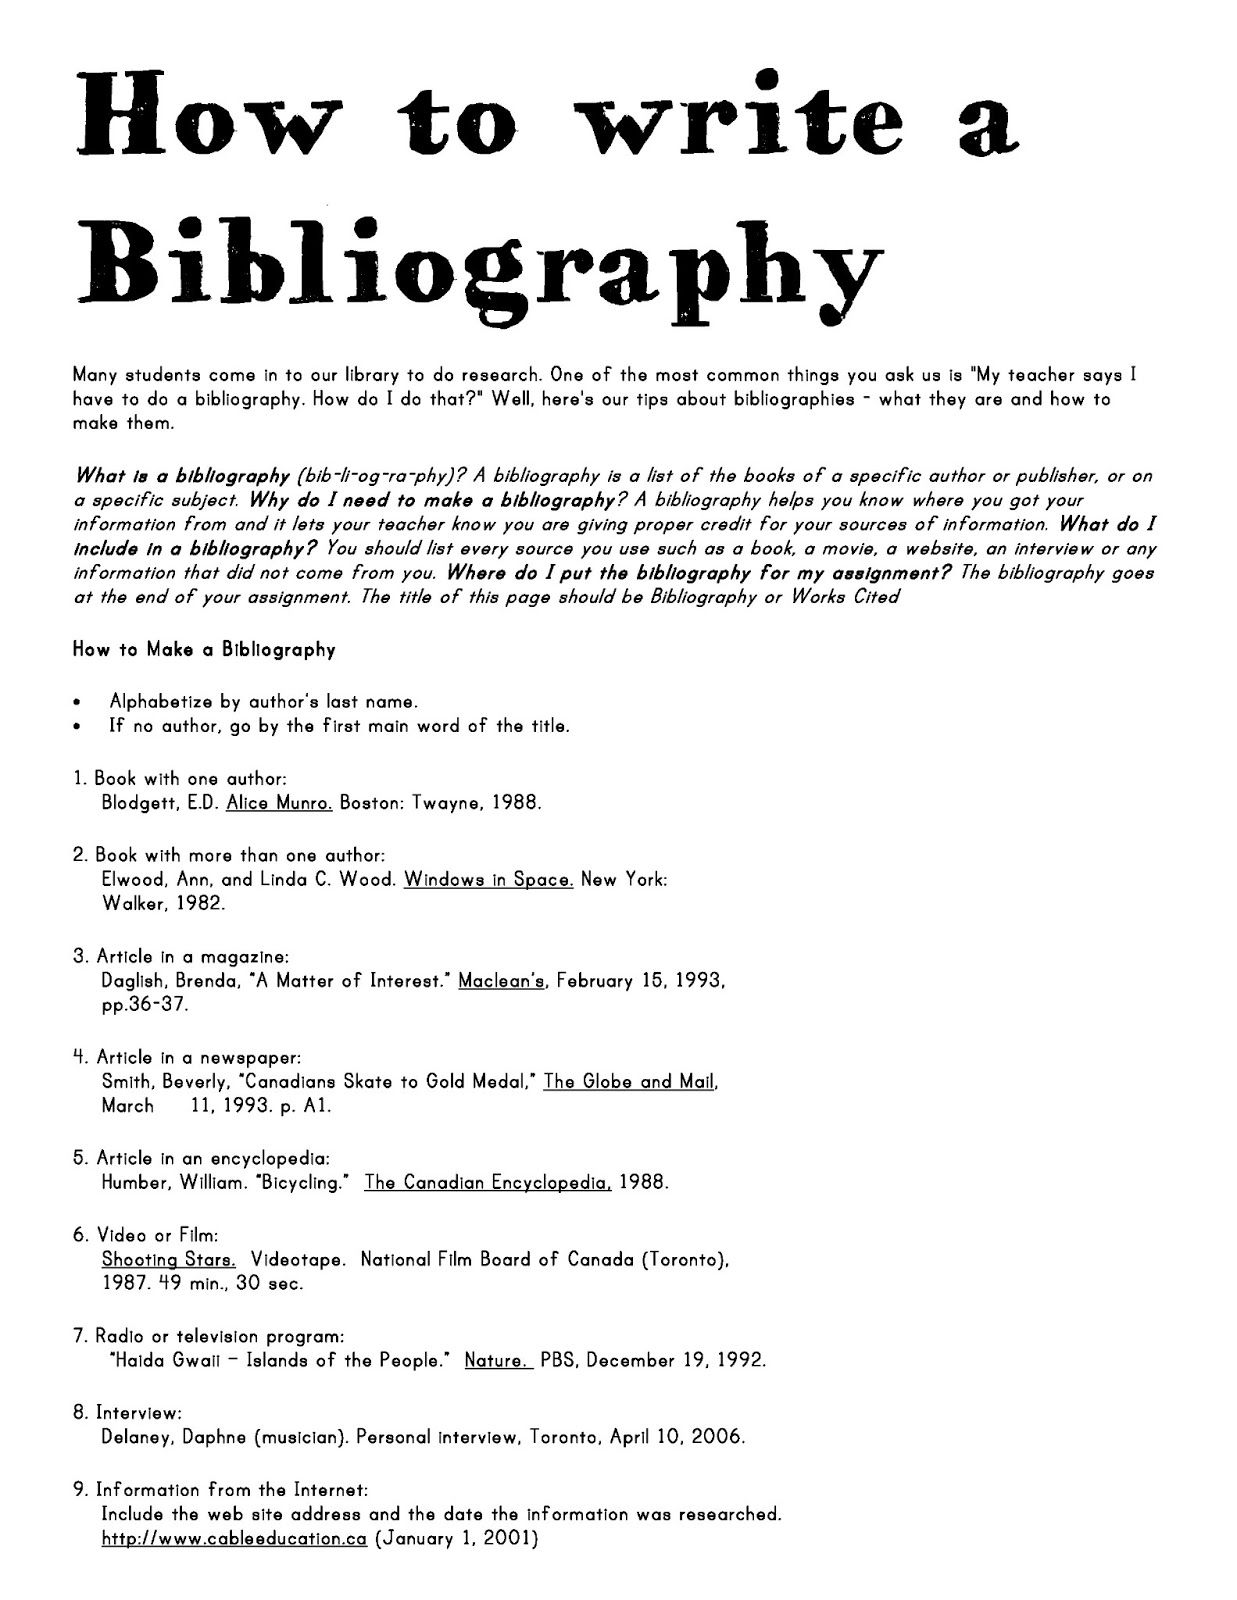 How To Write A Bibliography Page 0 Jpg 1237 1600 Writing A Bibliography Citing Sources Teaching Writing